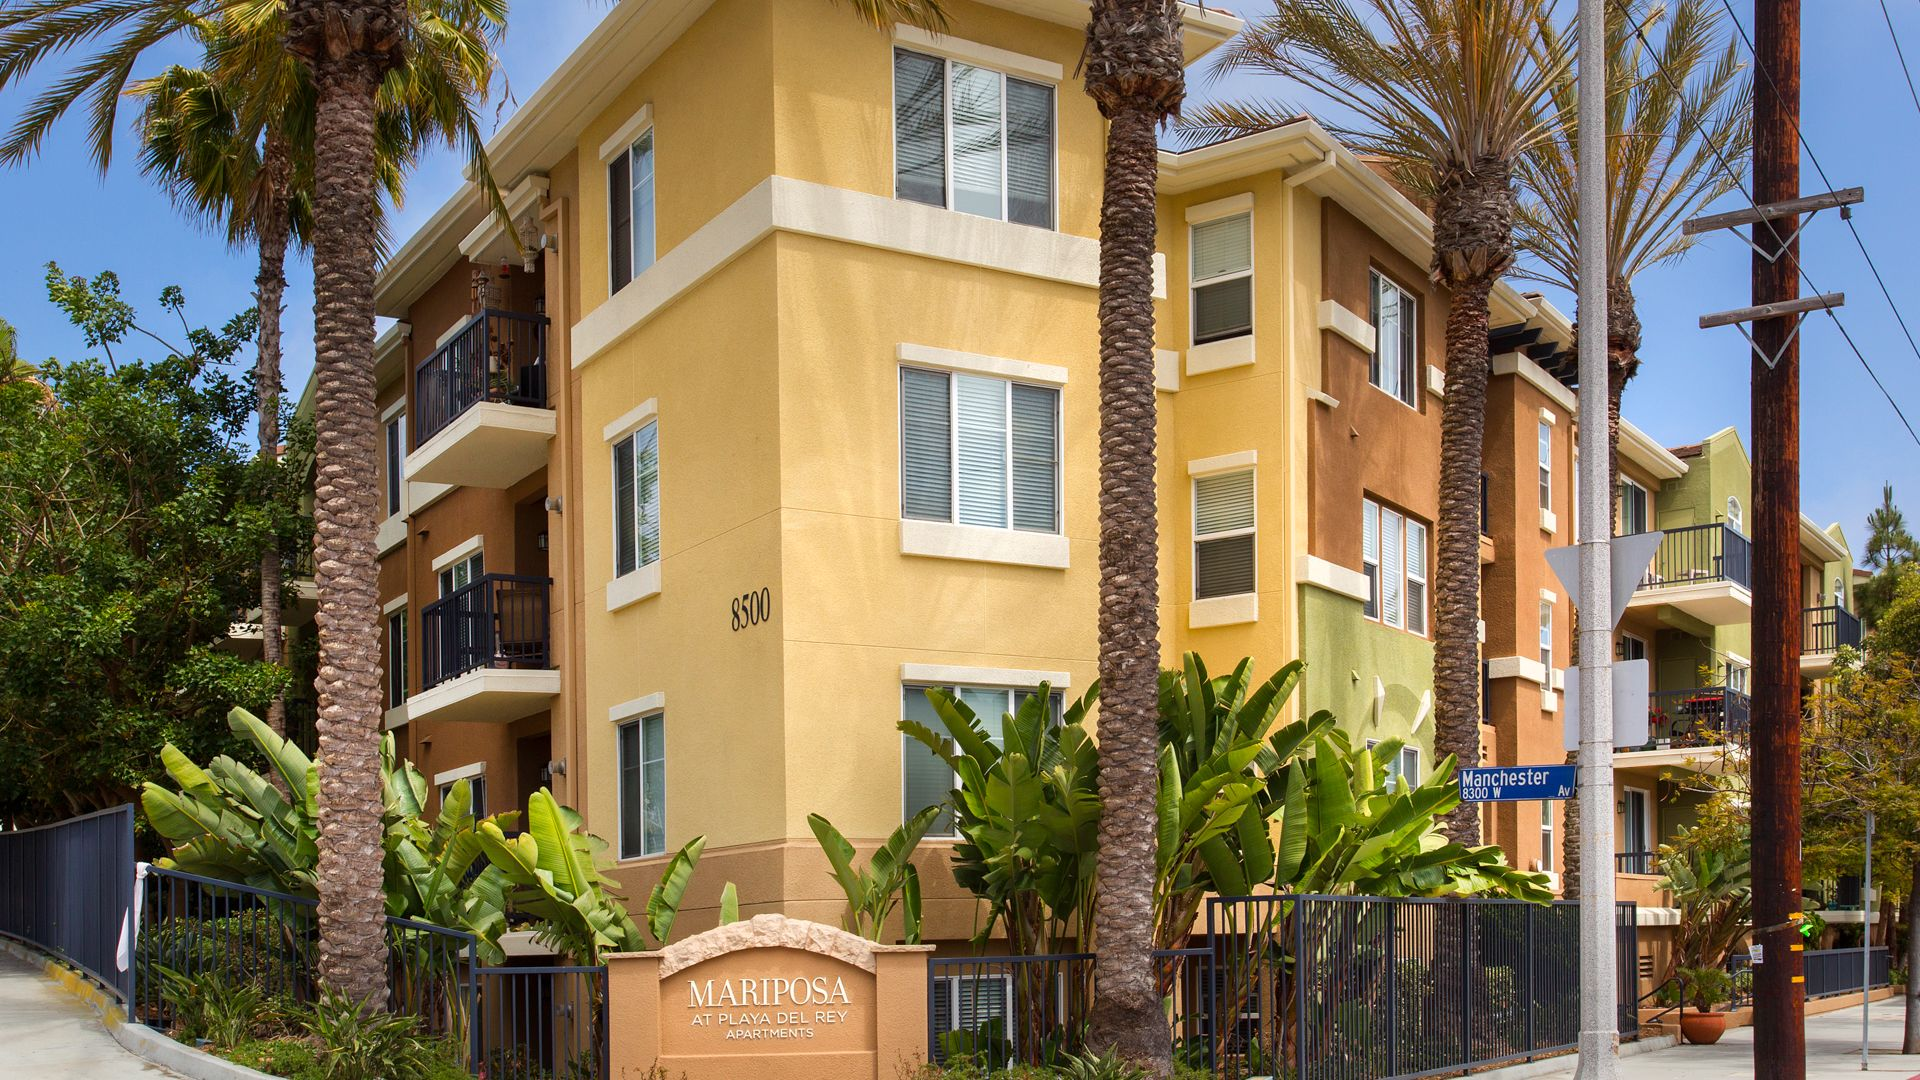 Mariposa at Playa del Rey Apartments - Exterior